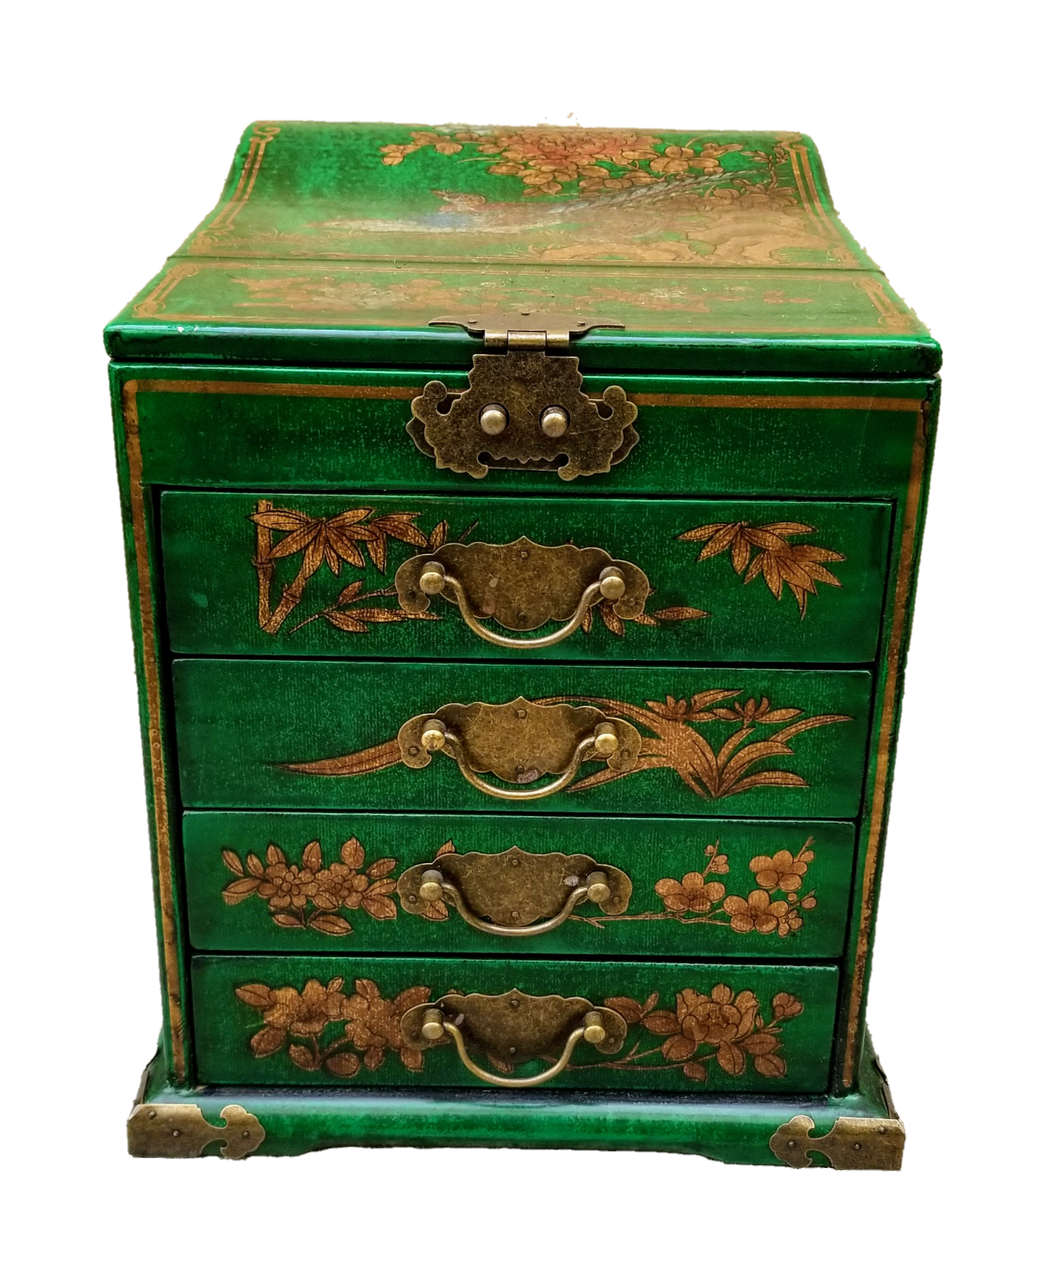 Antique Reproduction of Chinese Vanity / Jewelry Box